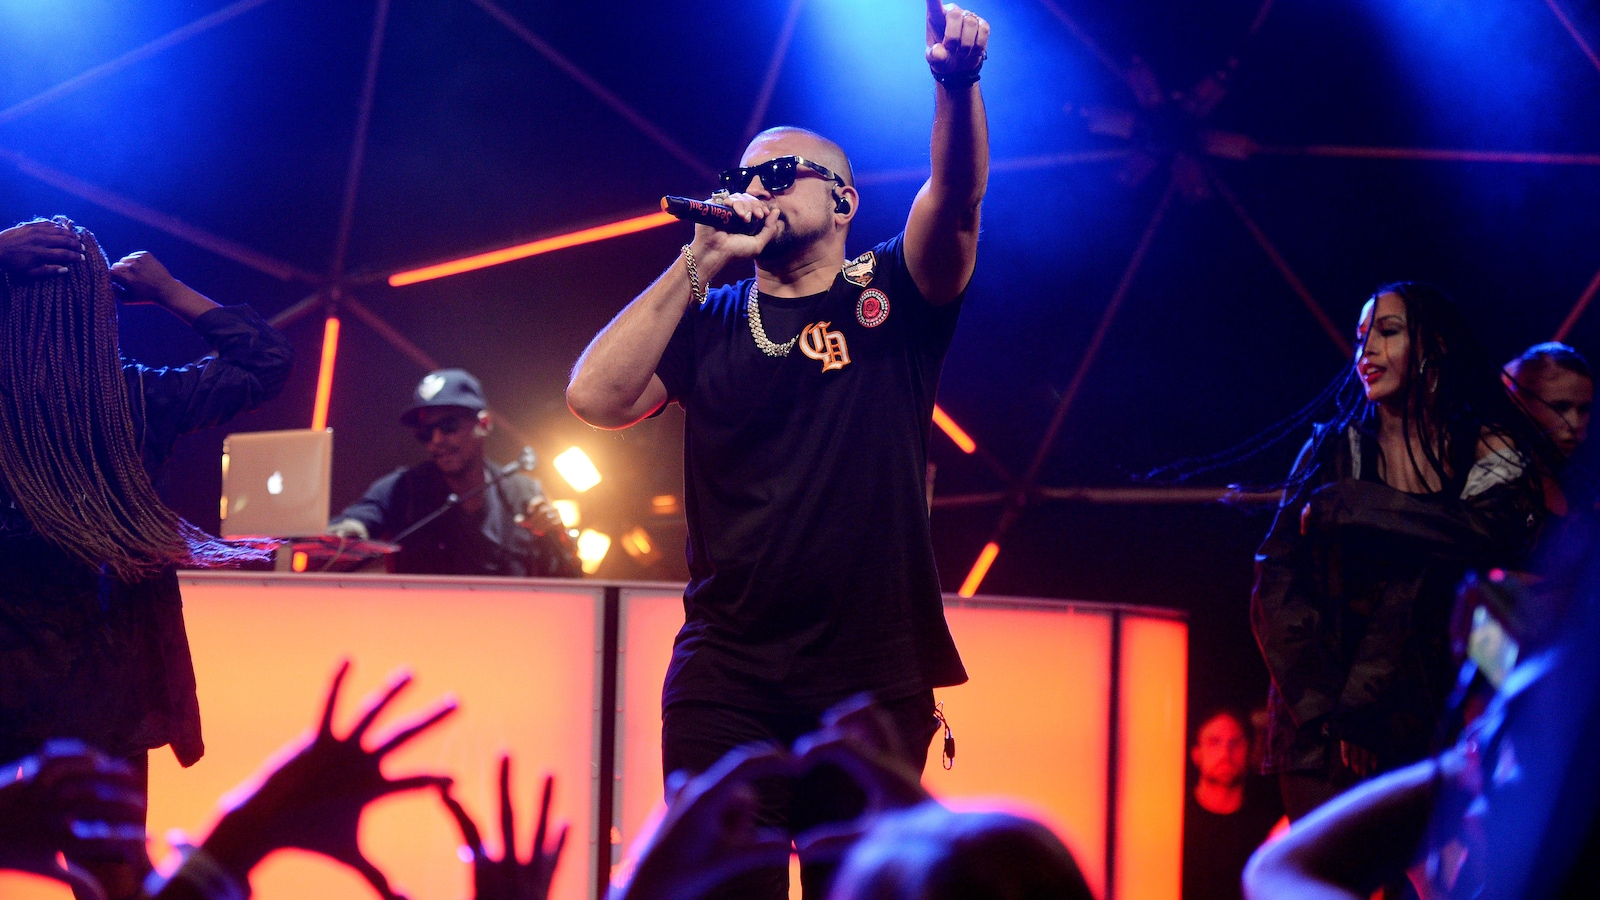 Sean Paul à MTV Live Stage en juin 2017 à Londres.